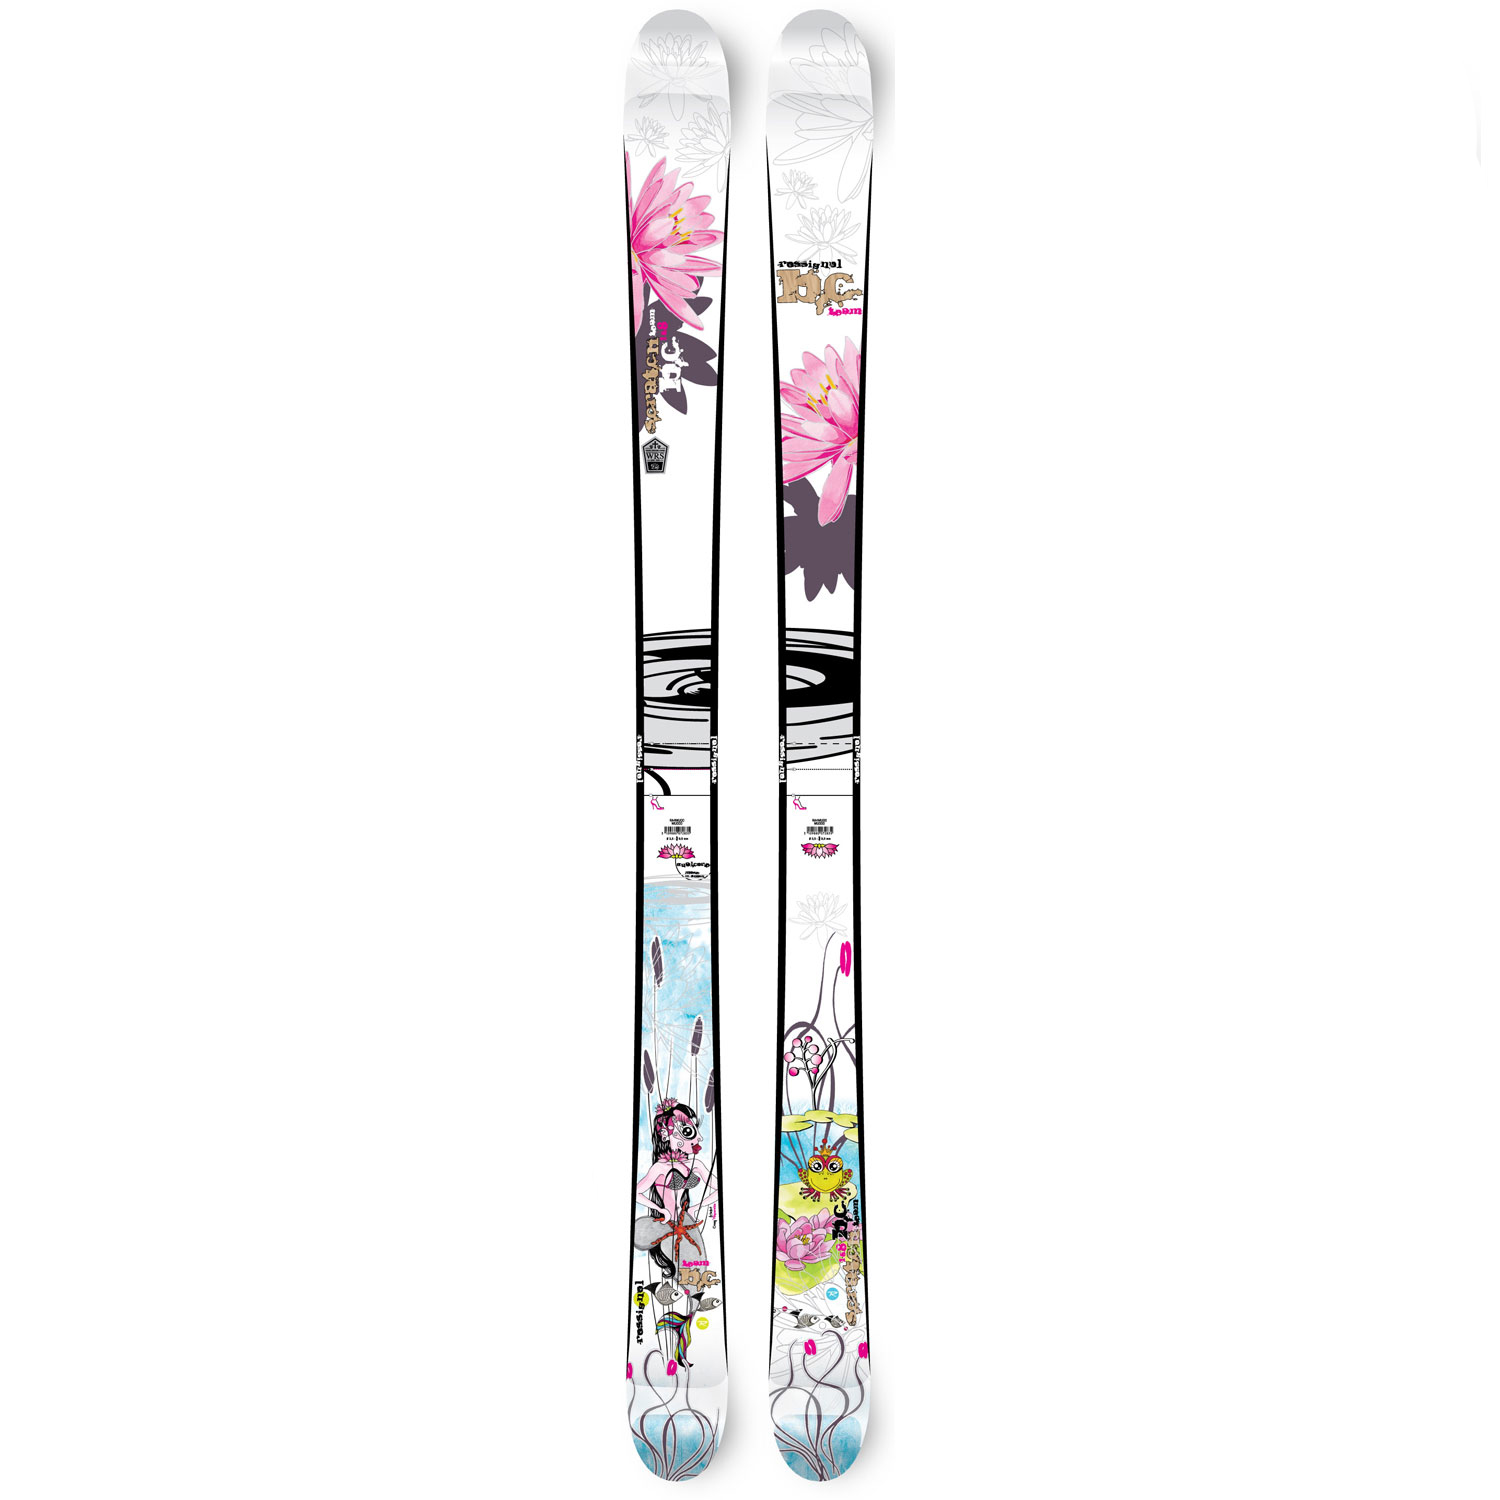 Ski The Rossignol Scratch Girl BC Skis are a recipe for freestyle bliss! A tasty blend of park and pipe and backcountry mixed into one sitting. The Girl BC will satisfy all your freeskiing cravings, whether you are boosting airs in the pipe or skiing your favorite powder stash. It's responsive, quick and positively scrumptious. Built with Rossignol's women's F.I.T. technology.Key Features of the Rossignol Scratch Girl BC Skis:  50% Backcountry/ 50% Jib  3 Mounting Points  30deg Slanting Sidewalls  F.I.T. (Feminine Intuitive Technology   Mini Cap  Rebound Tip  Rocking Chair Effect  Wood Core  WRS (Weight Reduction System   Sidecut: 120/ 90/ 113  Radius: 16.4(160 - $199.95